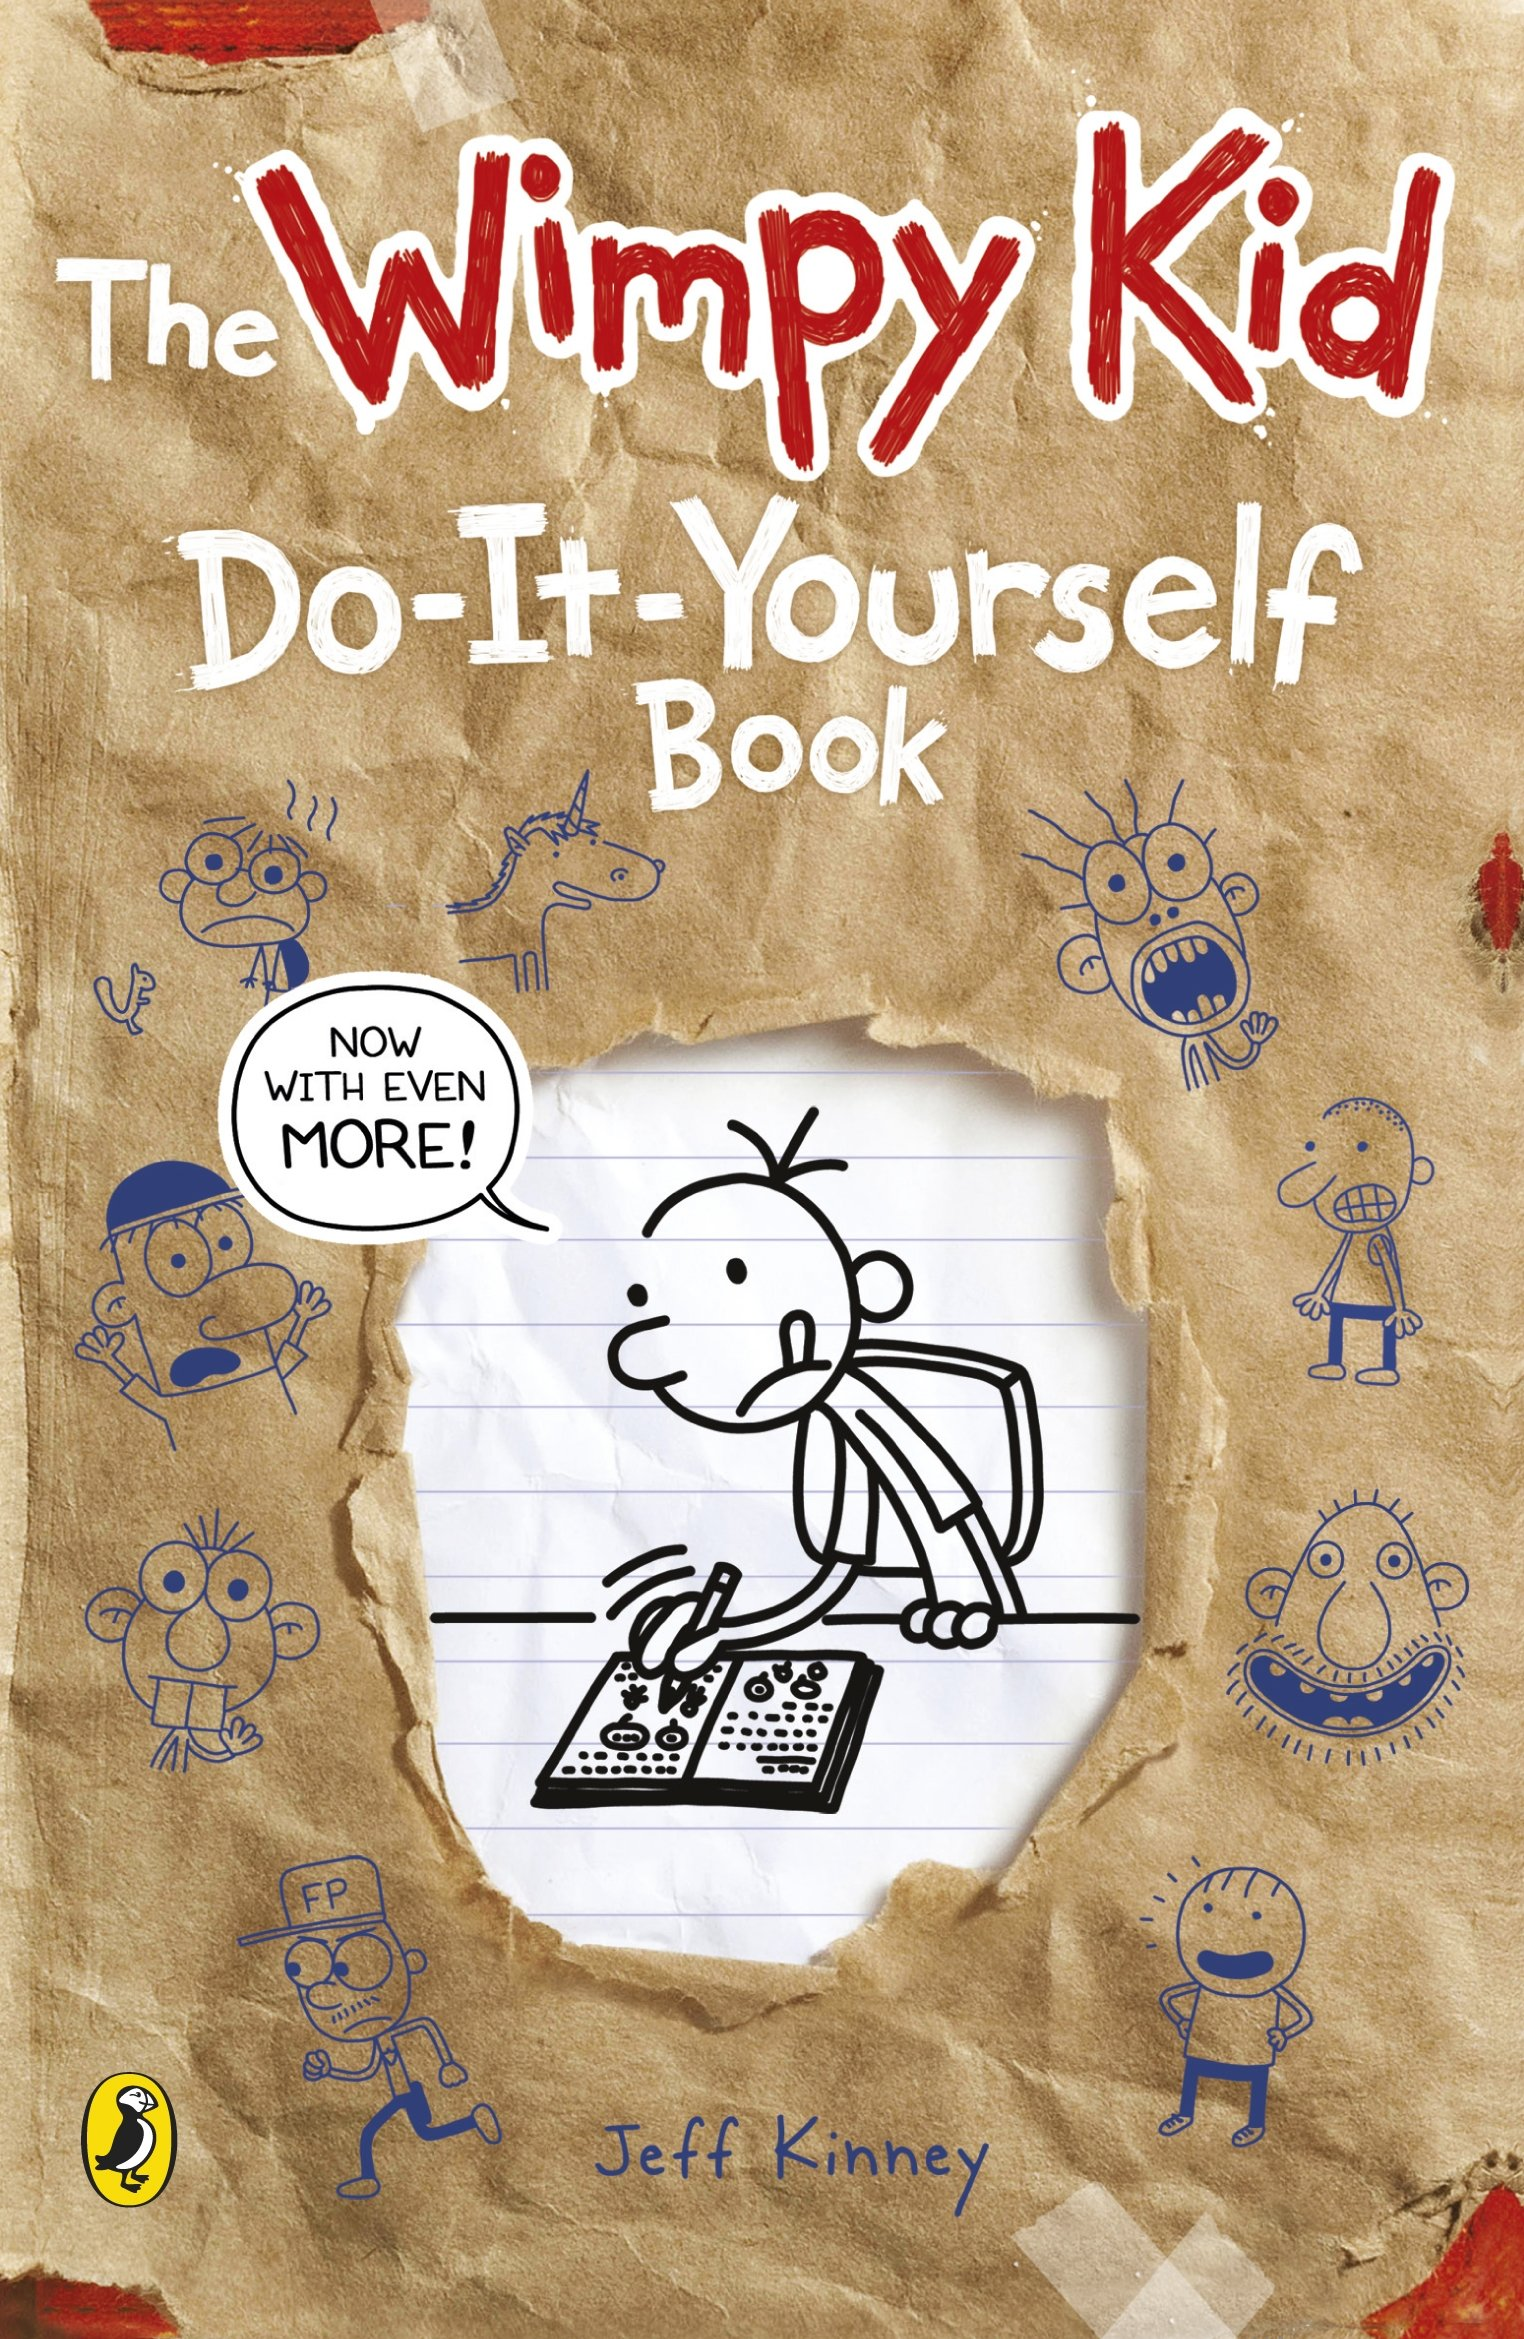 Buy the wimpy kid do it yourself book diary of a wimpy kid book buy the wimpy kid do it yourself book diary of a wimpy kid book online at low prices in india the wimpy kid do it yourself book diary of a wimpy kid solutioingenieria Gallery